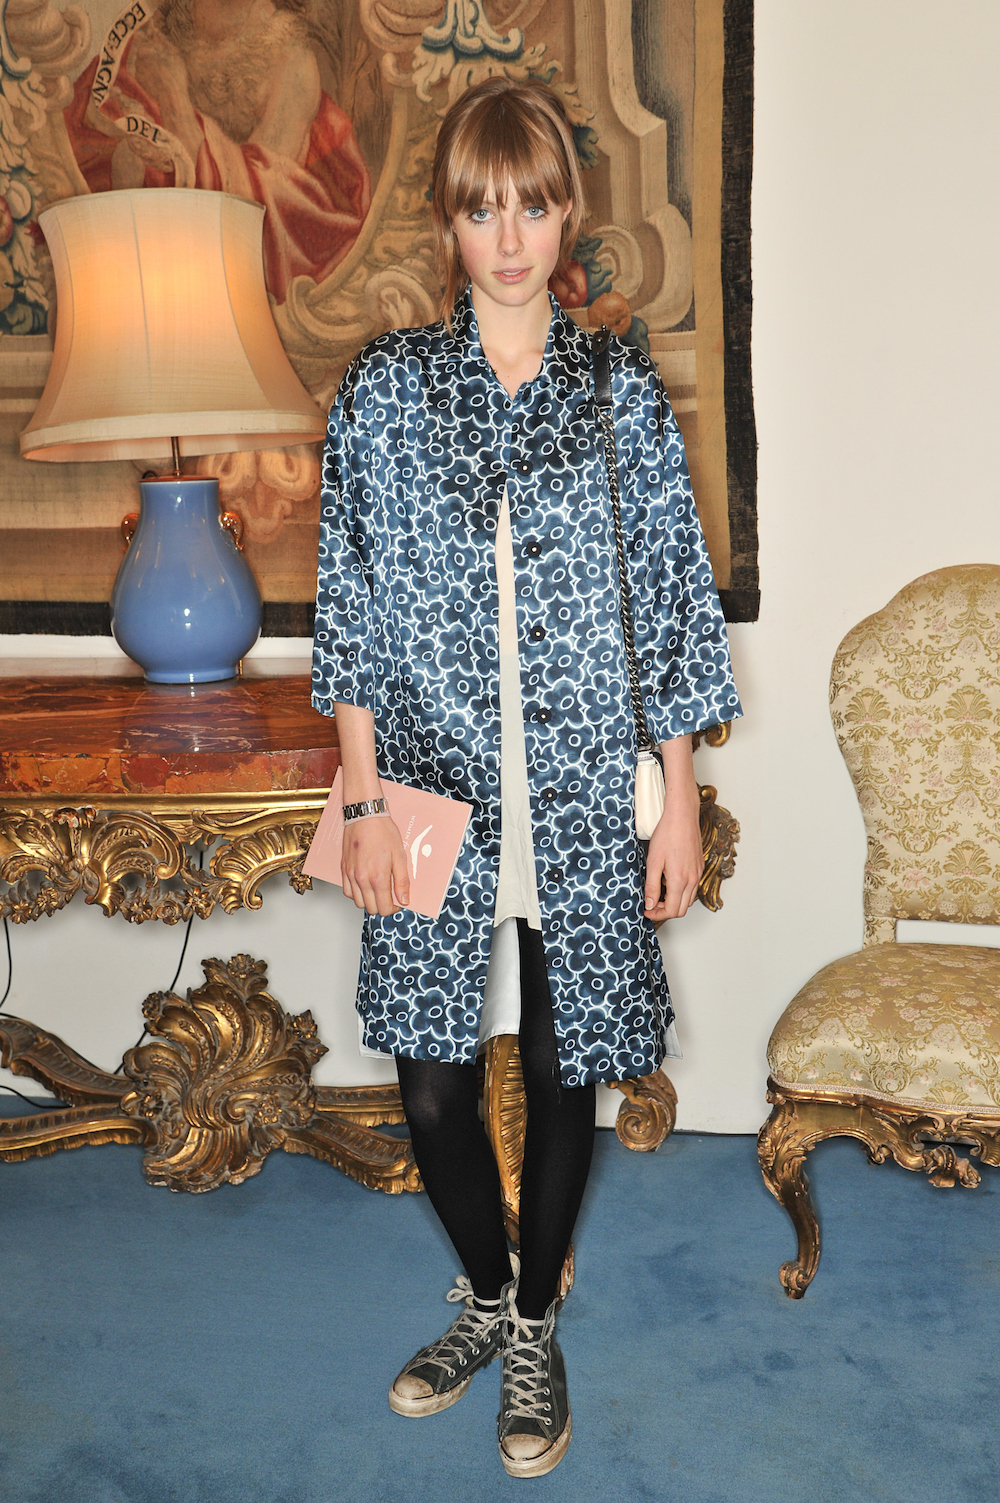 LONDON, ENGLAND - NOVEMBER 29: Edie Campbell attends a catwalk show and auction hosted by Browns, Harpers Bazaar and H.E. Alain Giorgio Maria Economides in aid of Women for Women International on November 29, 2012 in London, England. (Photo by Nick Harvey/WireImage)